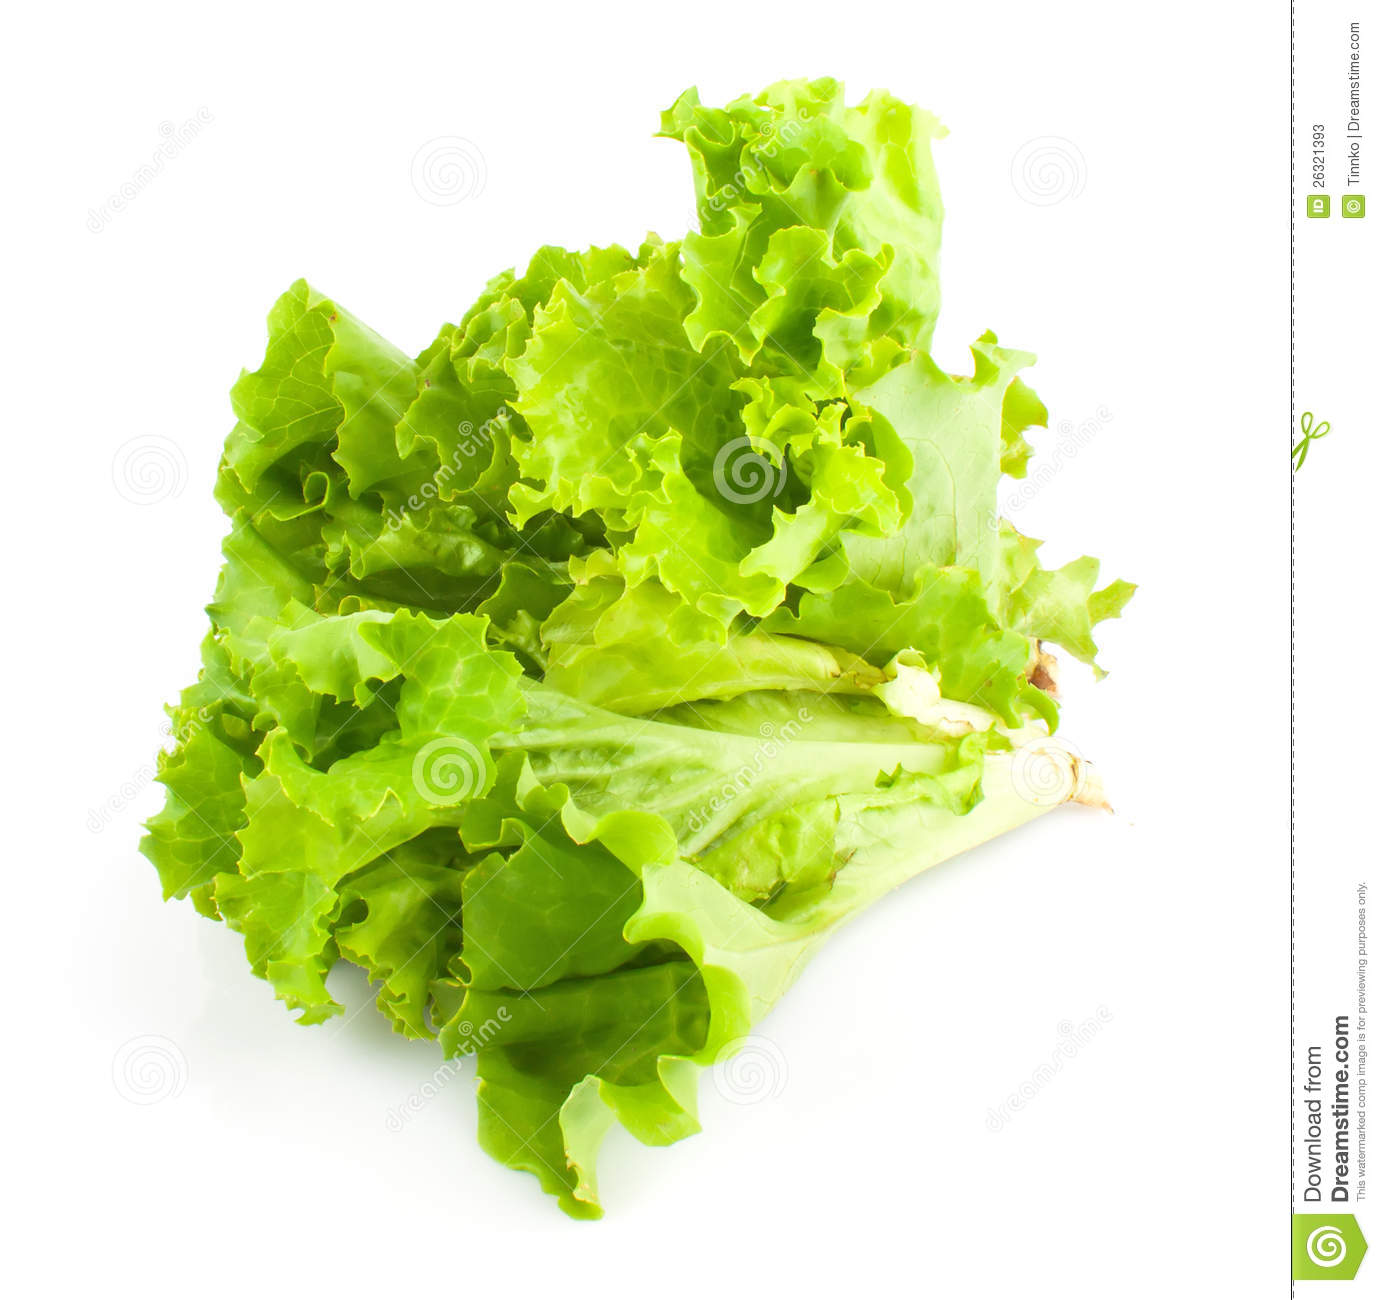 Green Leaves Of Lettuce Salad Stock Photos - Image: 26321393